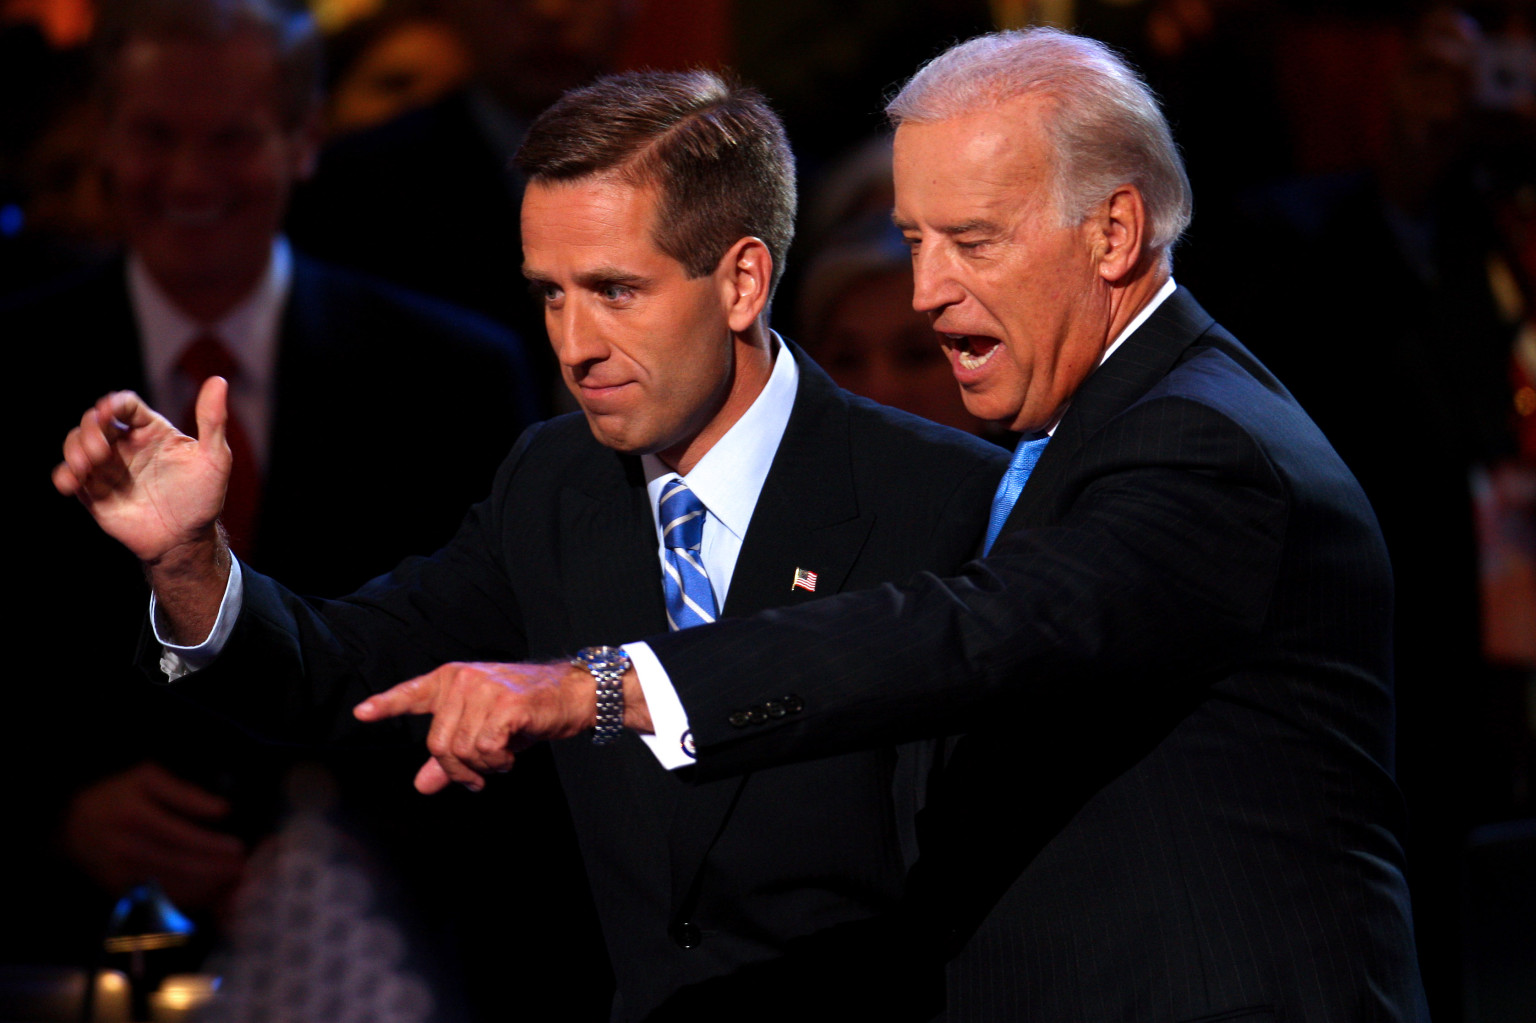 Joe Biden, right, a Democratic senator from Delaware and vic